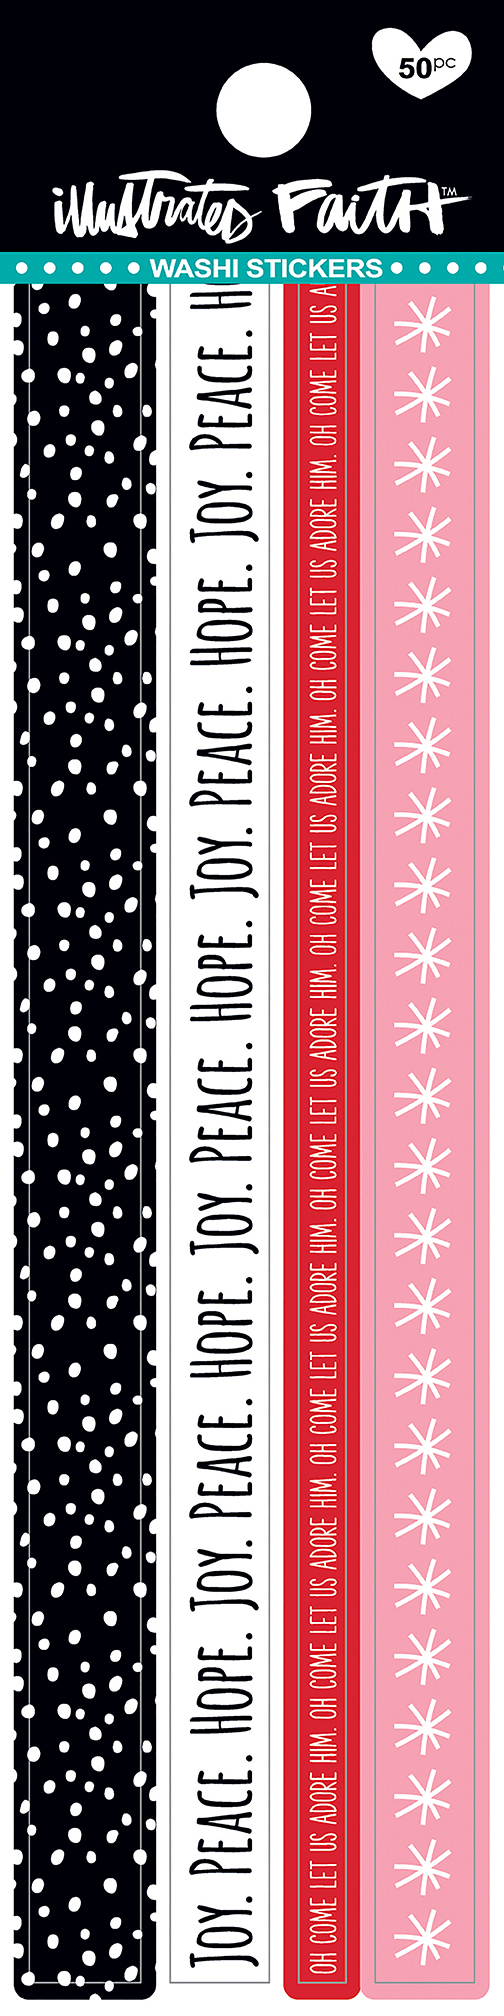 1393_WASHI_STICKERS_FRONT